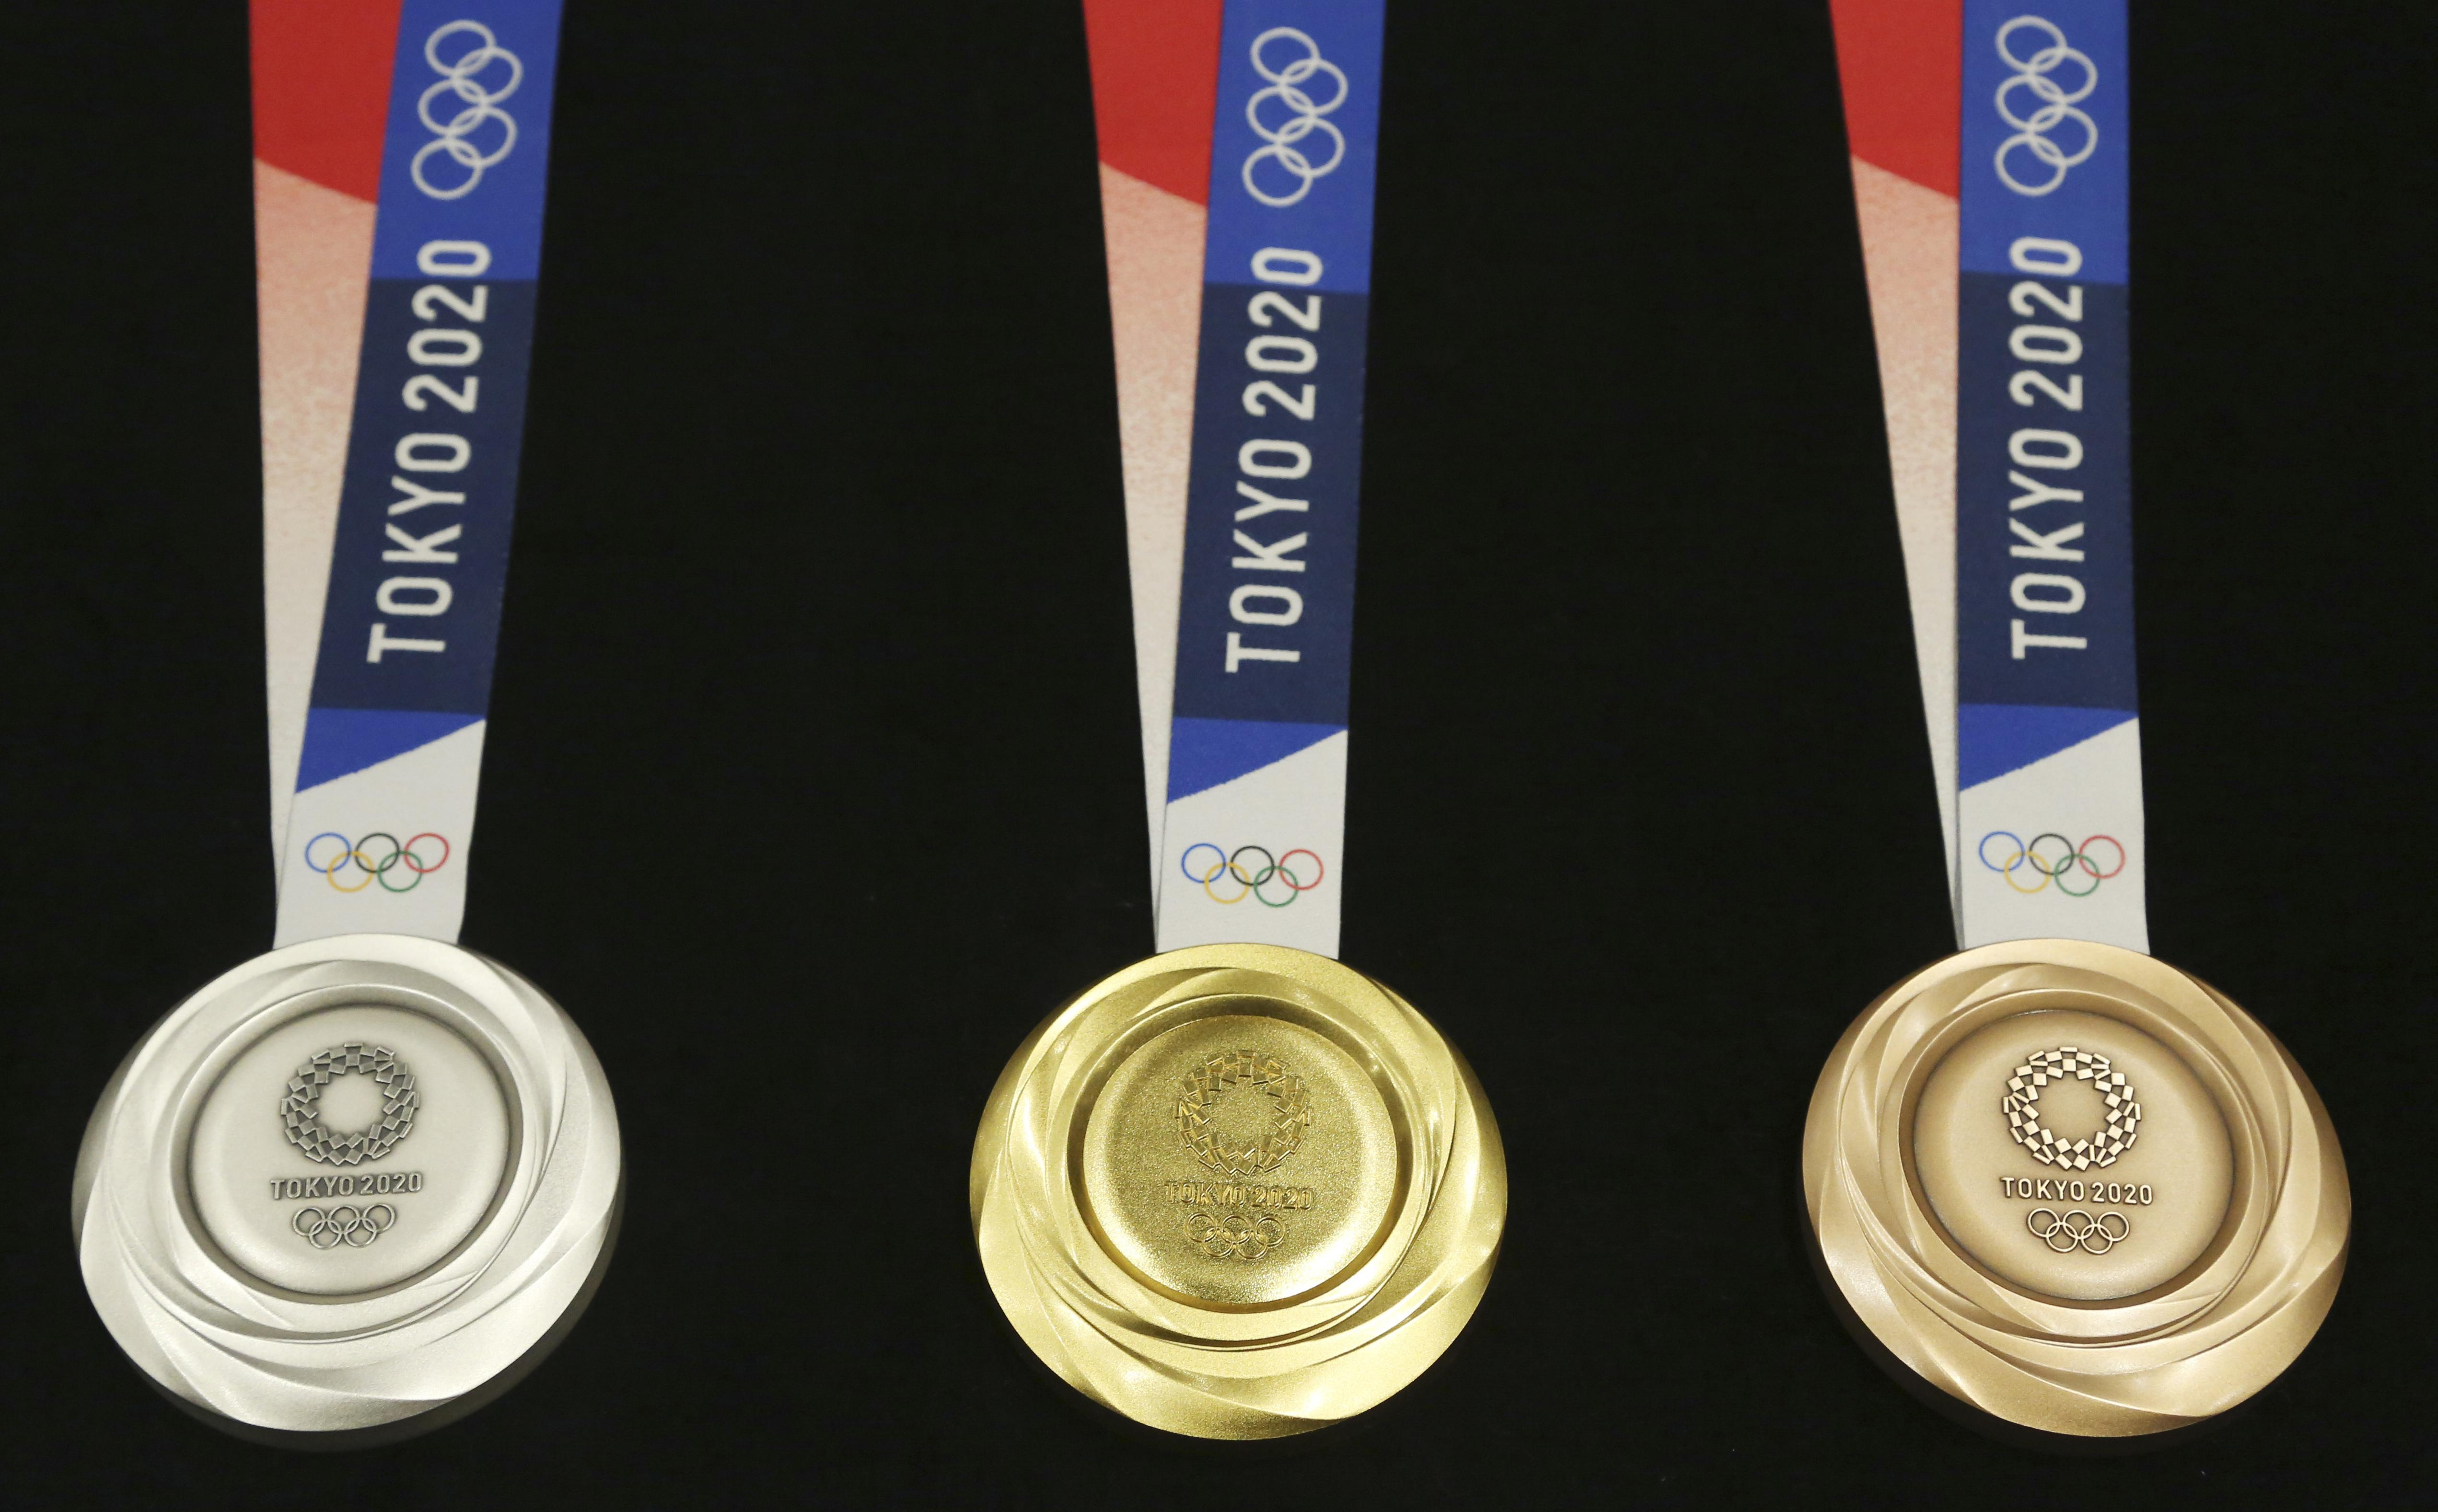 Six months to go: A look at the Tokyo Olympic medal count ...